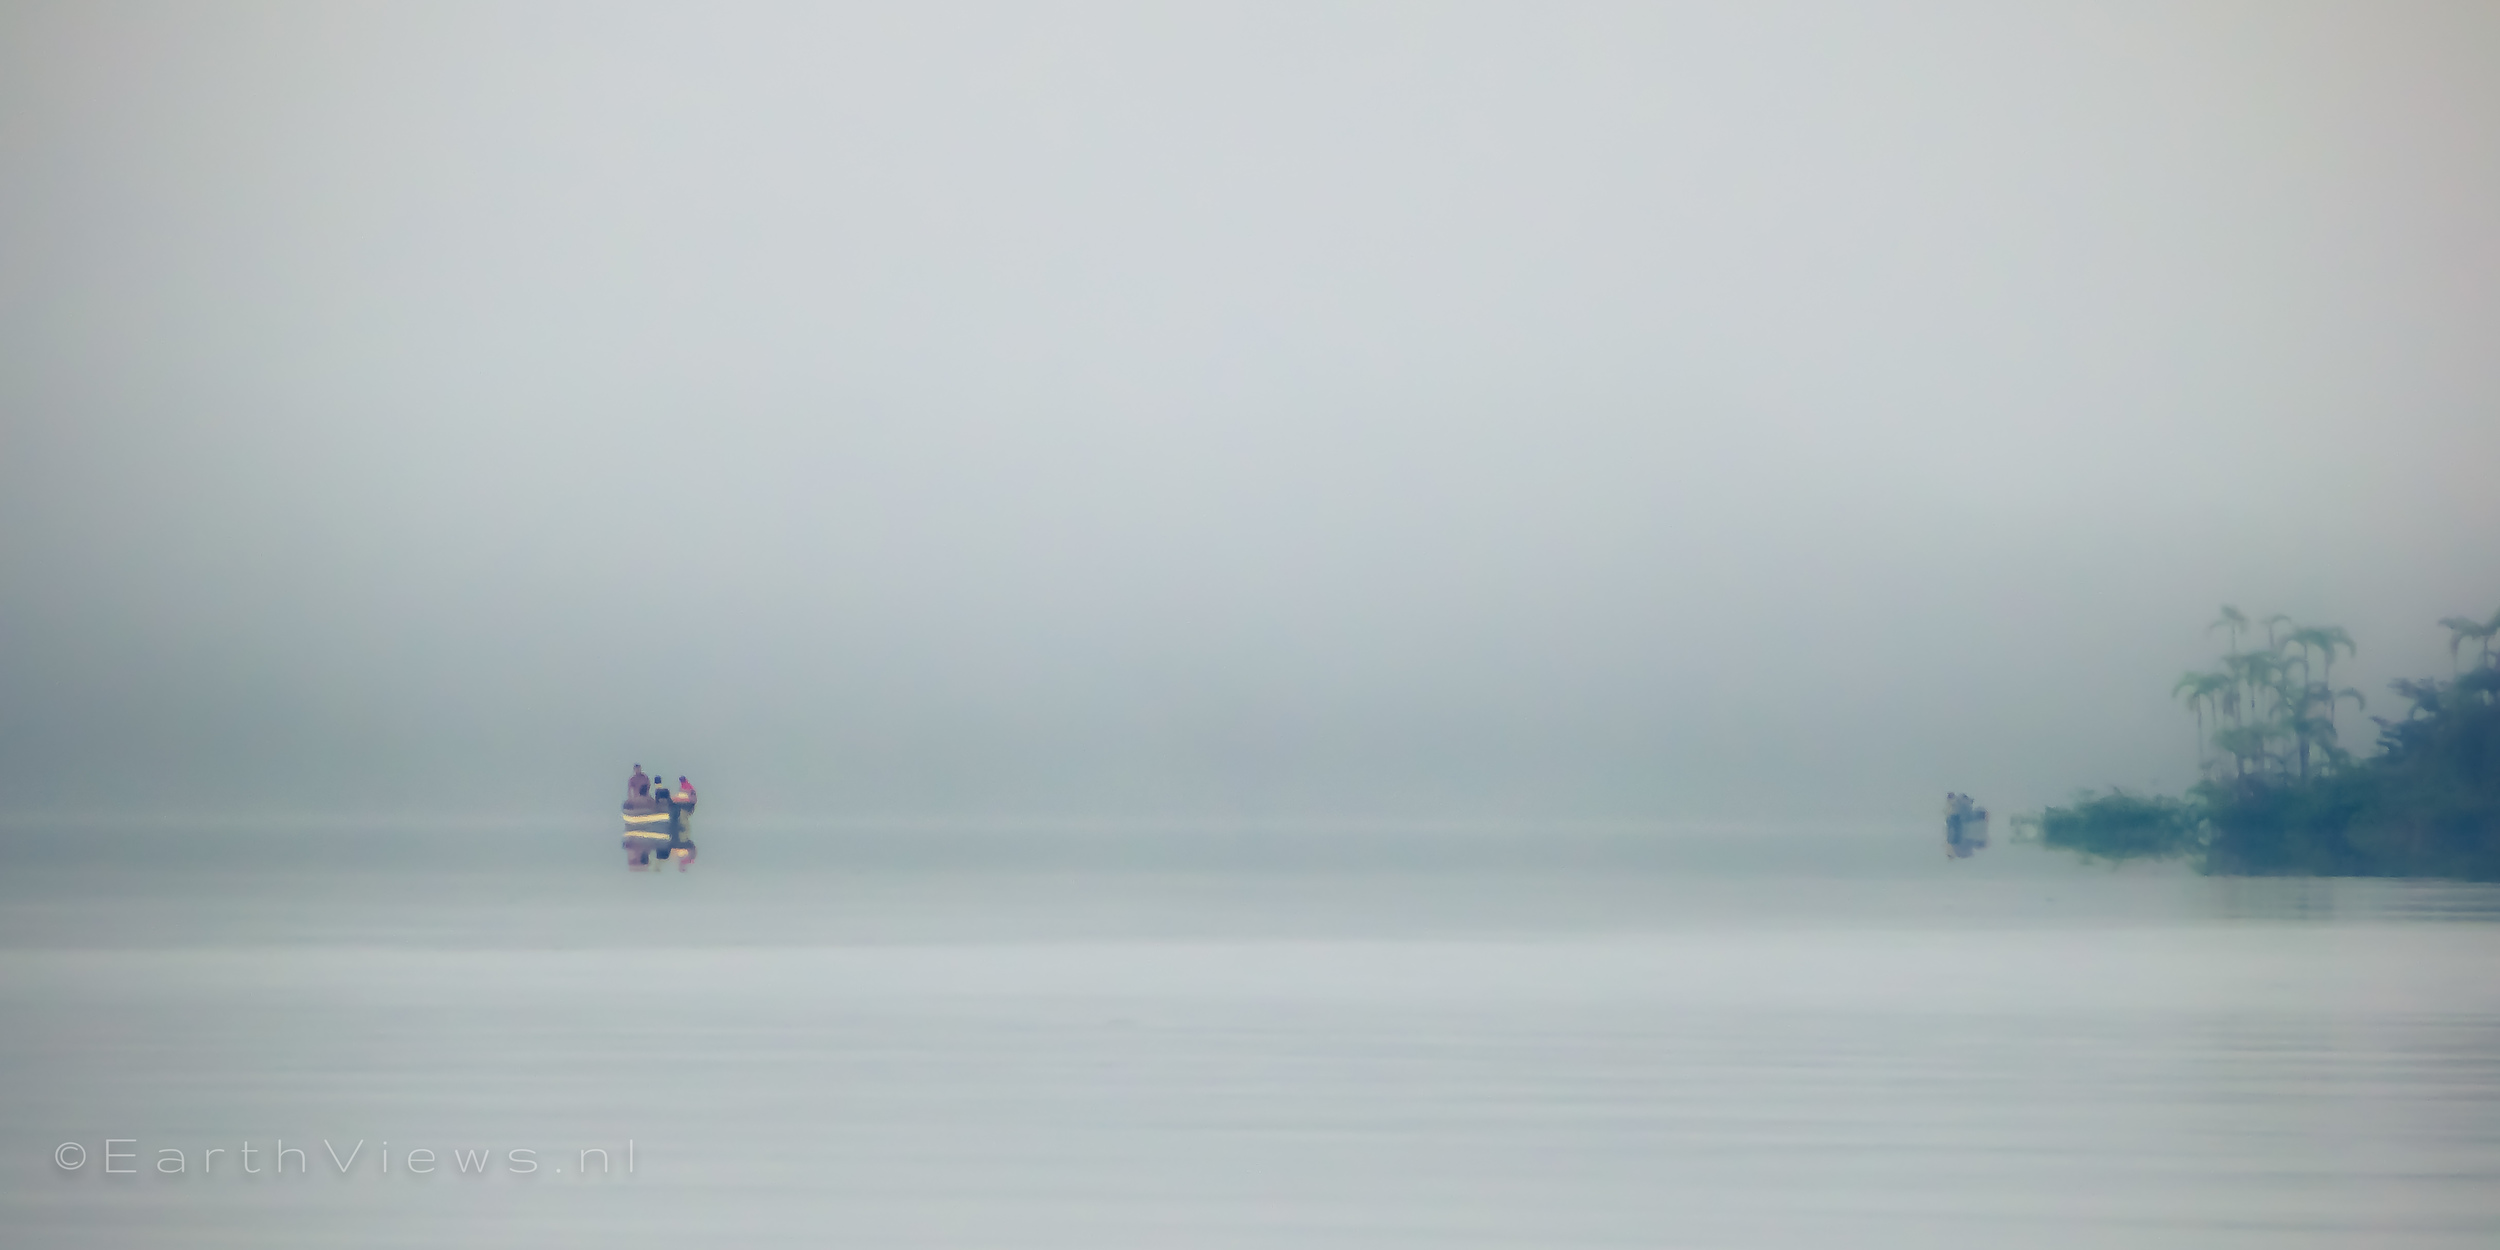 A couple of other boats were on the water early in the morning.